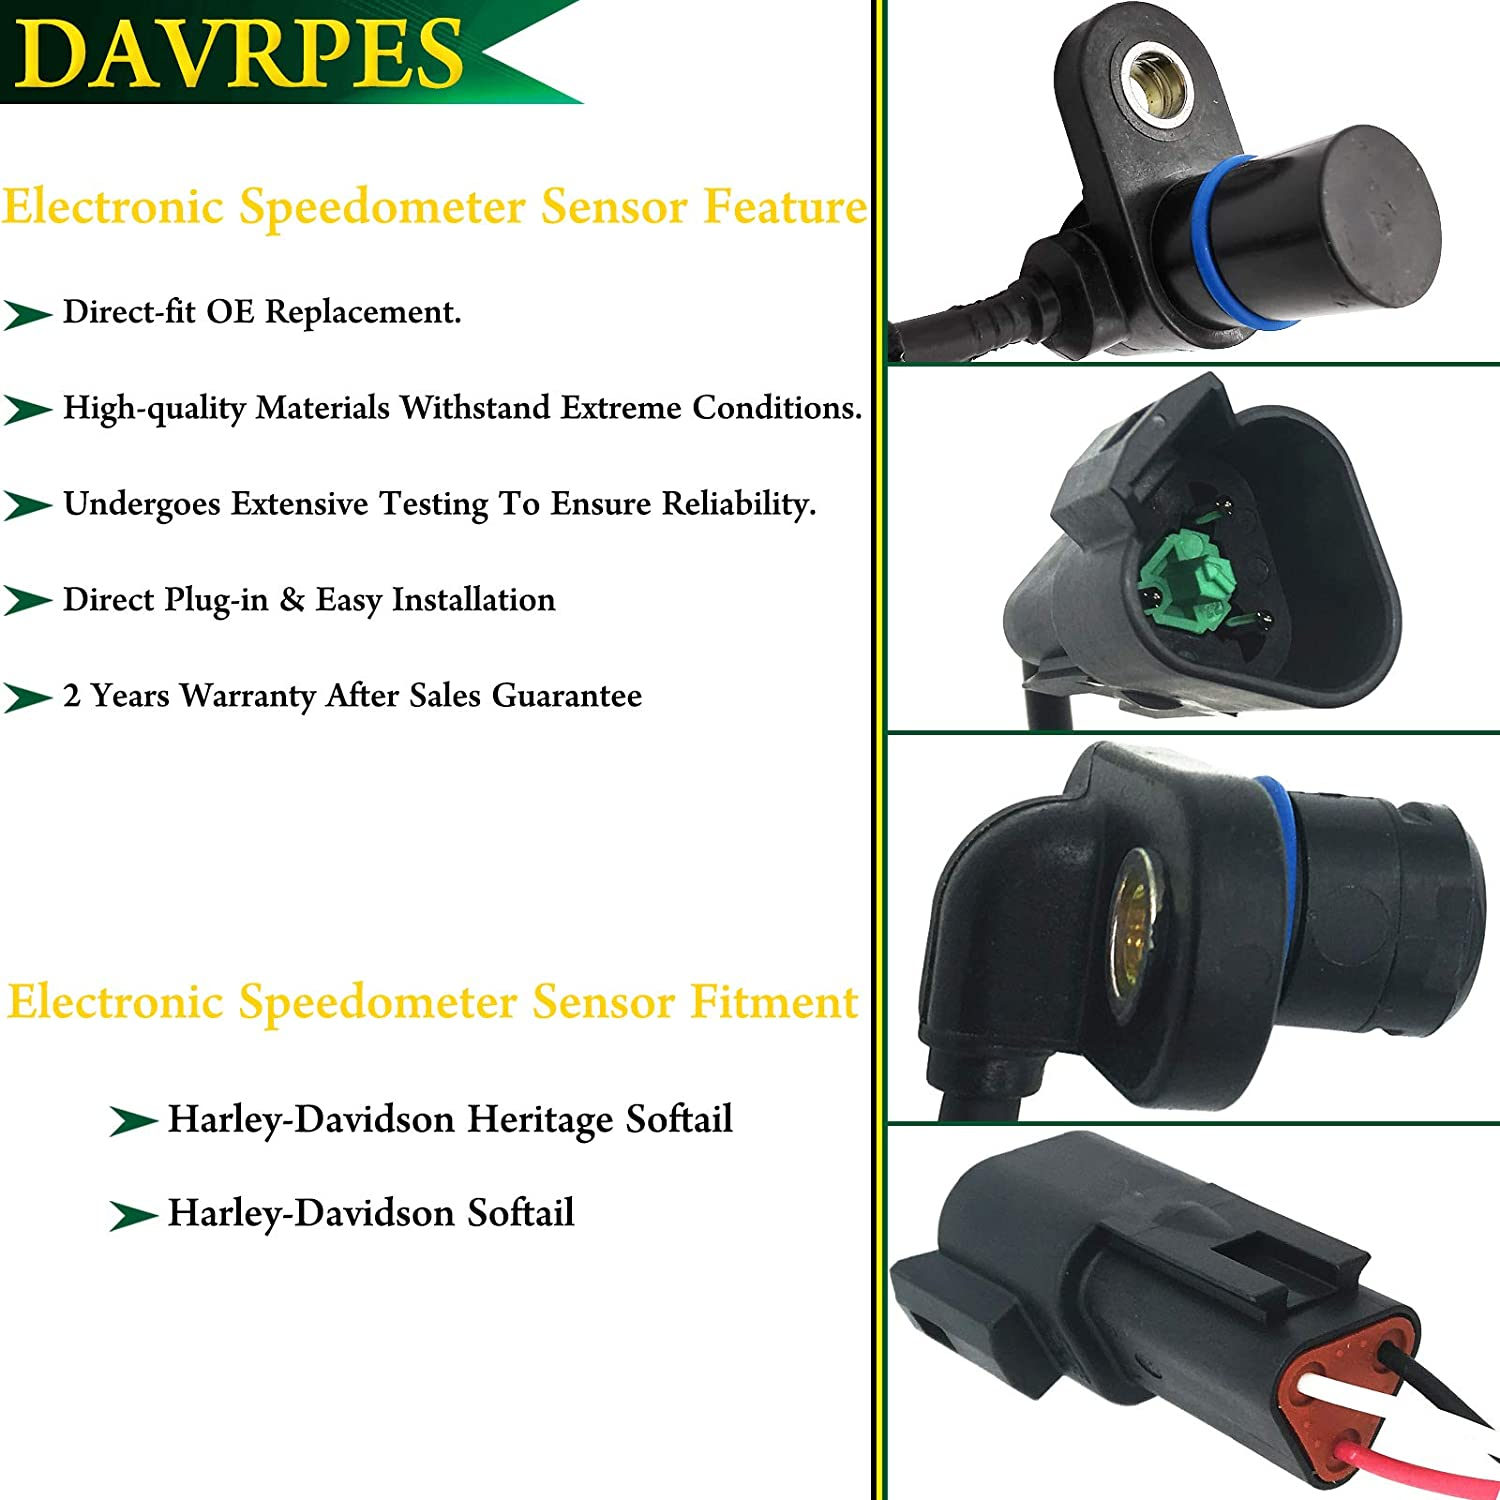 DAVRPES 74437-96B Electronic Speedometer Sensor For 1996-2003 Harley Softail Fatboy FXSTB Replace#74437-96A|7443796A|74437-96|7443796